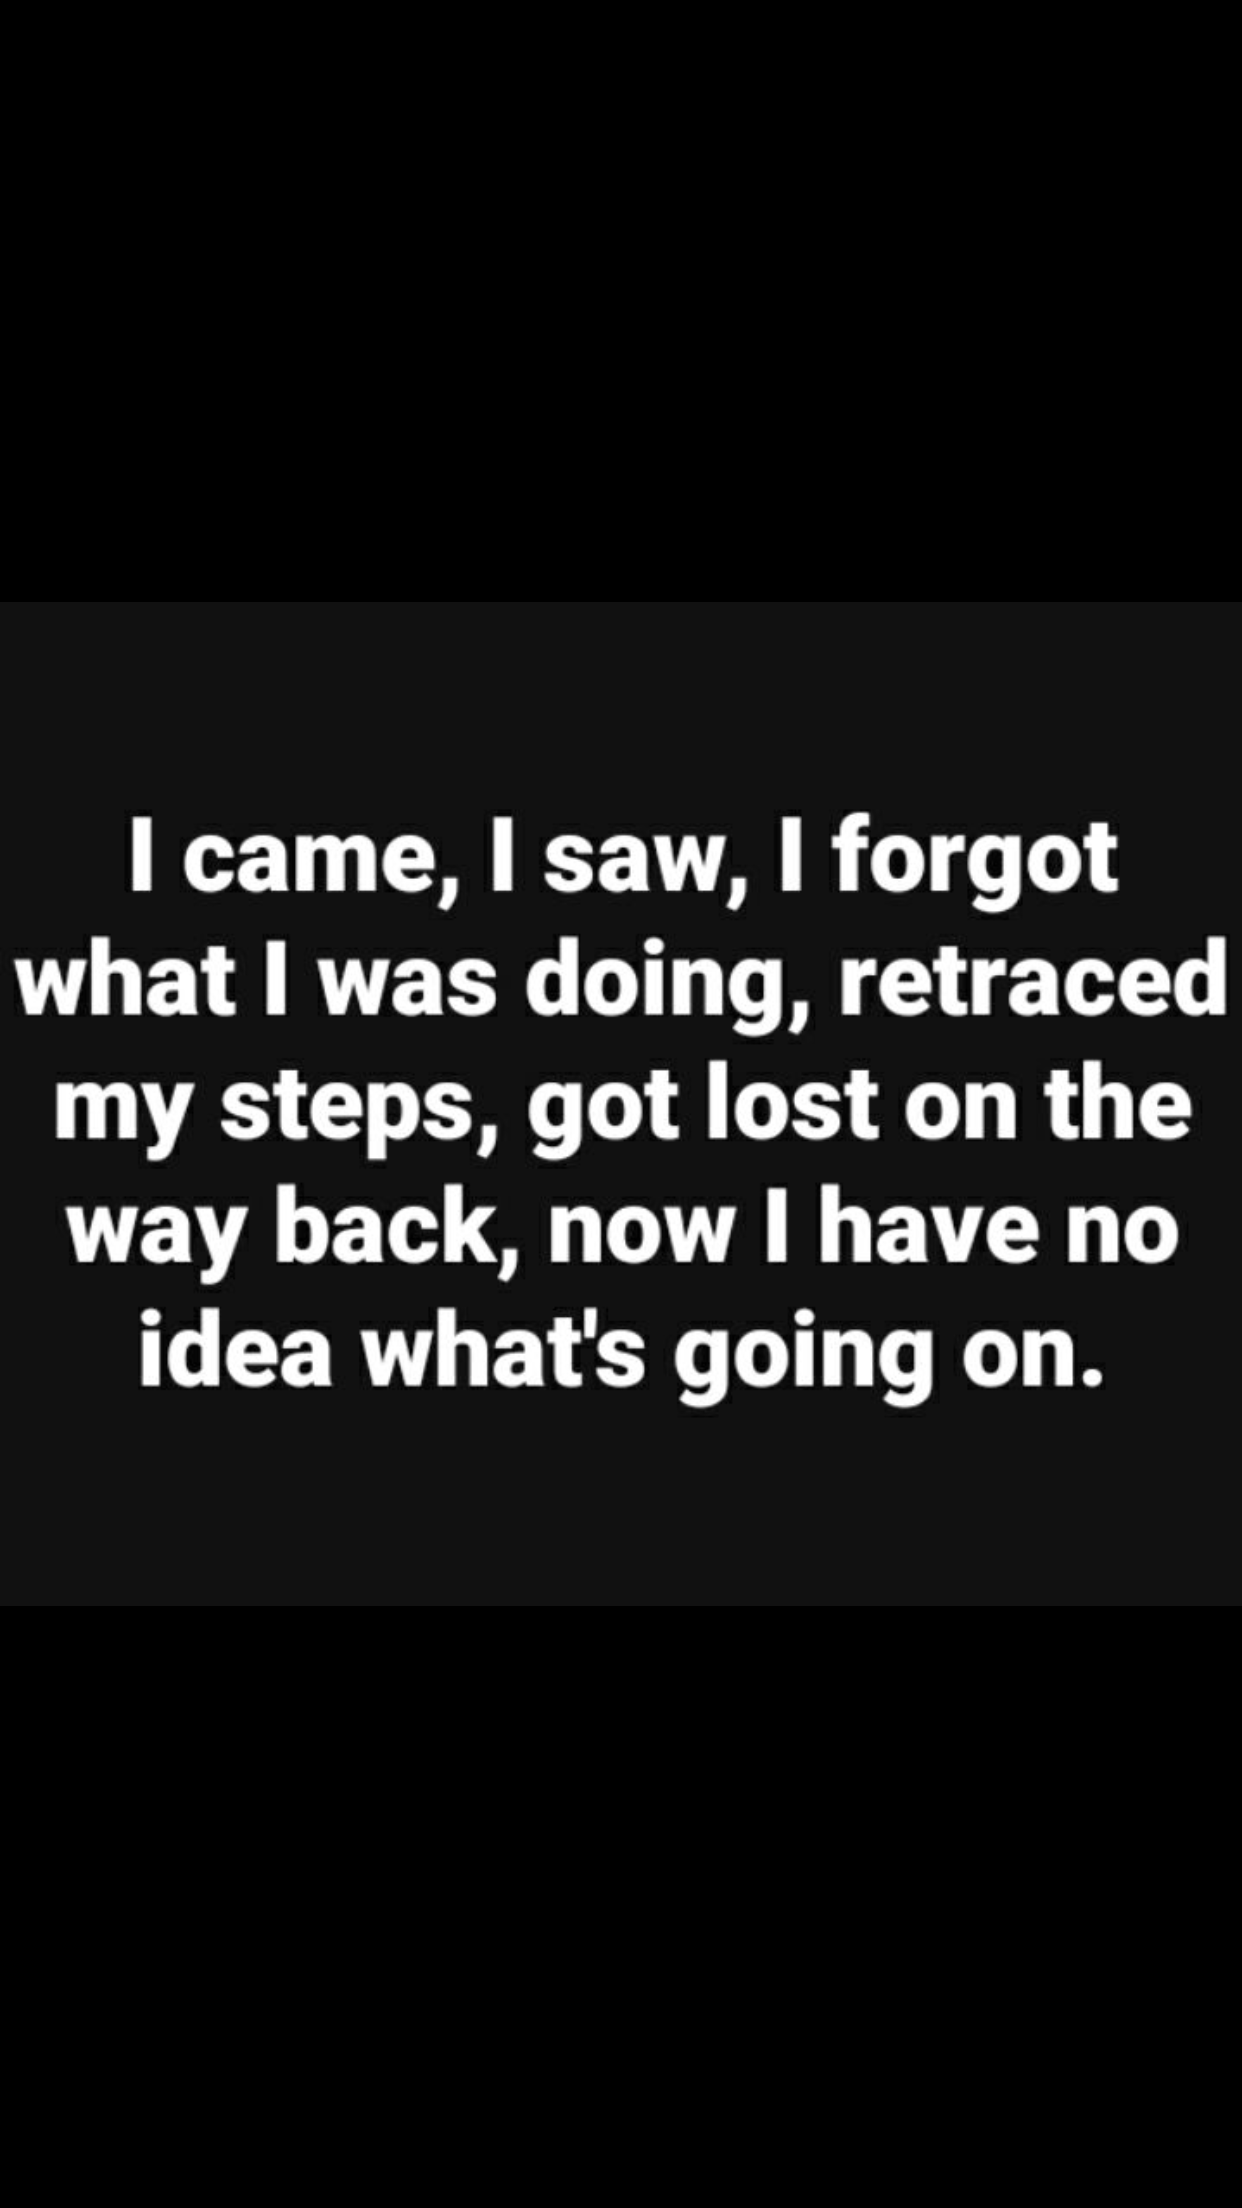 Pin By Manda Panda On Personal Funny Quotes Sarcastic Quotes Inspirational Quotes